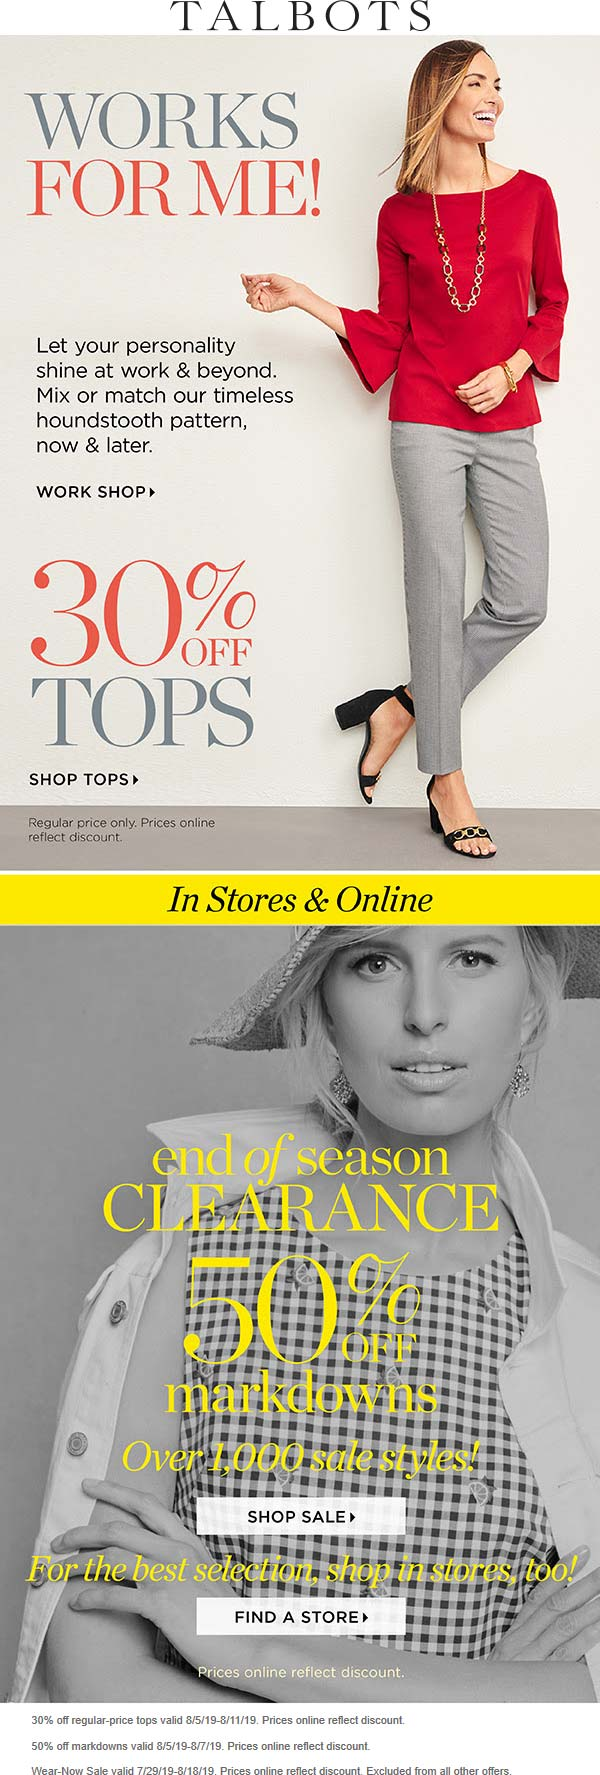 Talbots Coupon August 2020 30% off tops & 50% off sale items at Talbots, ditto online